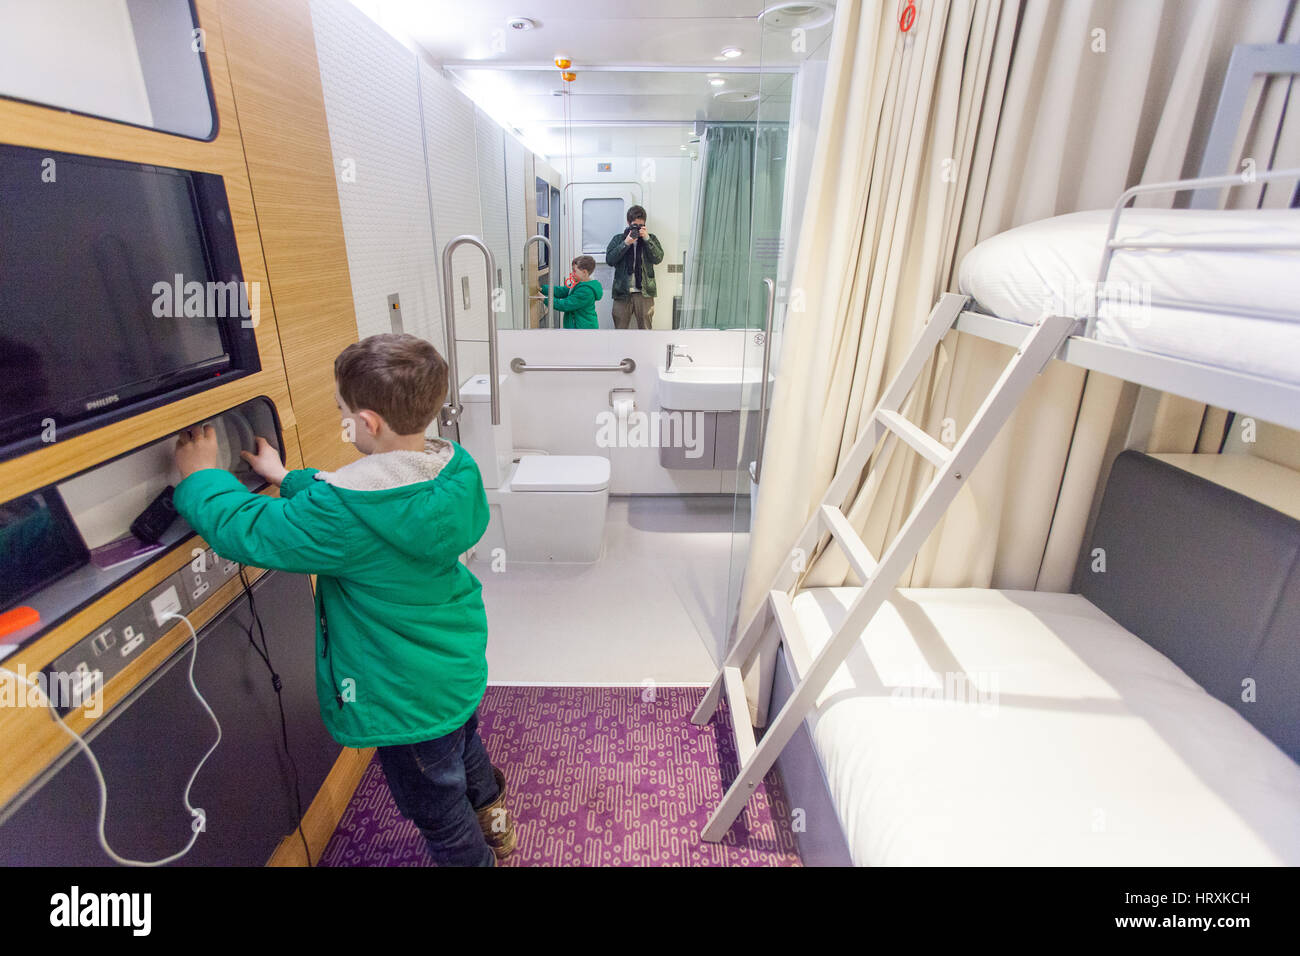 Seven year old boy at the Yotel, Gatwick airport, England, United Kingdom. - Stock Image